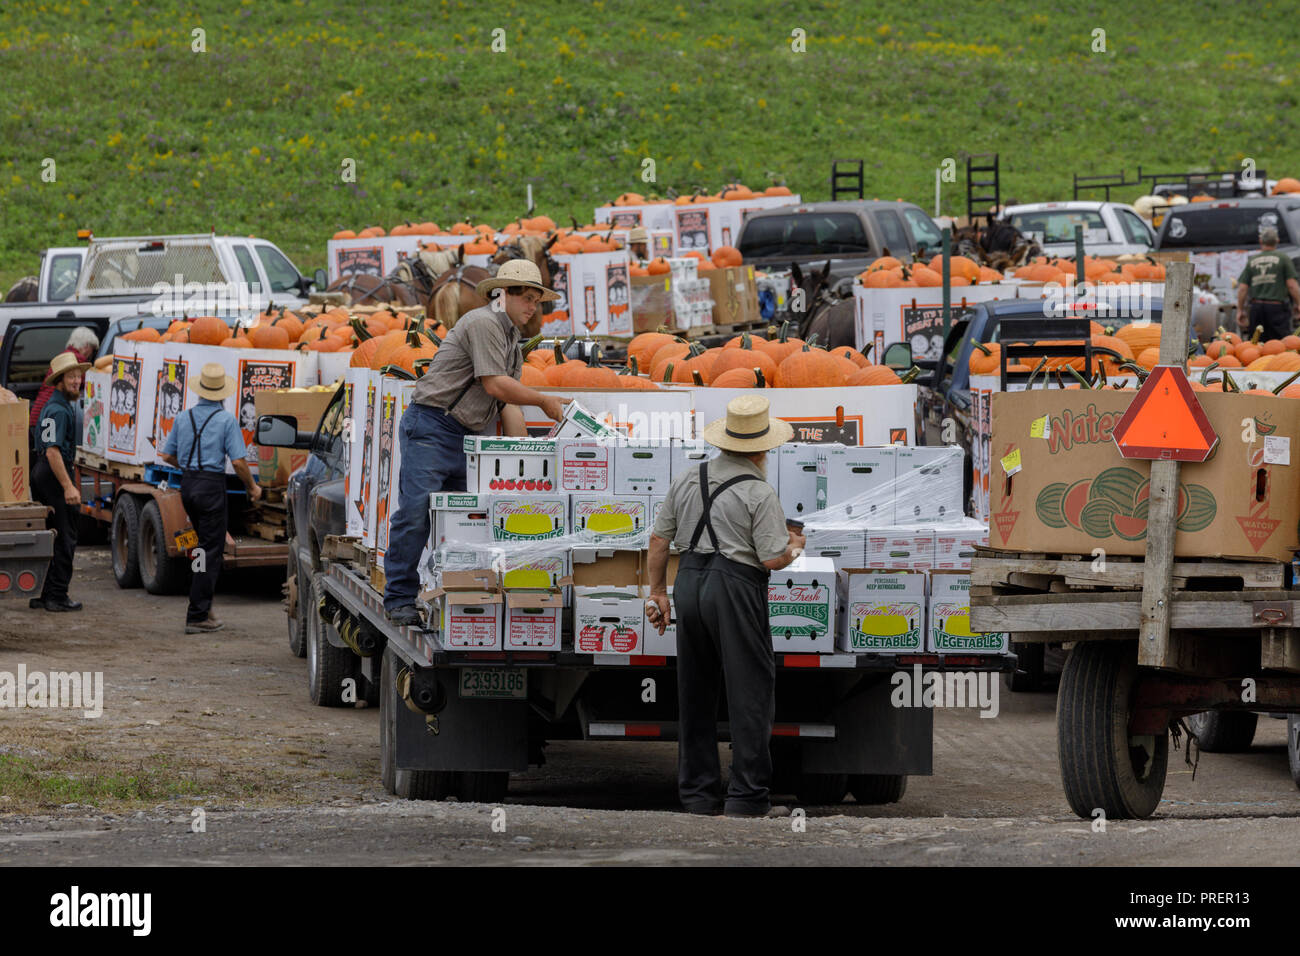 Minden, Mohawk Valley, New York State: Autumn harvest pumpkins are trucked in from miles around for the Amish farm produce auction. Stock Photo